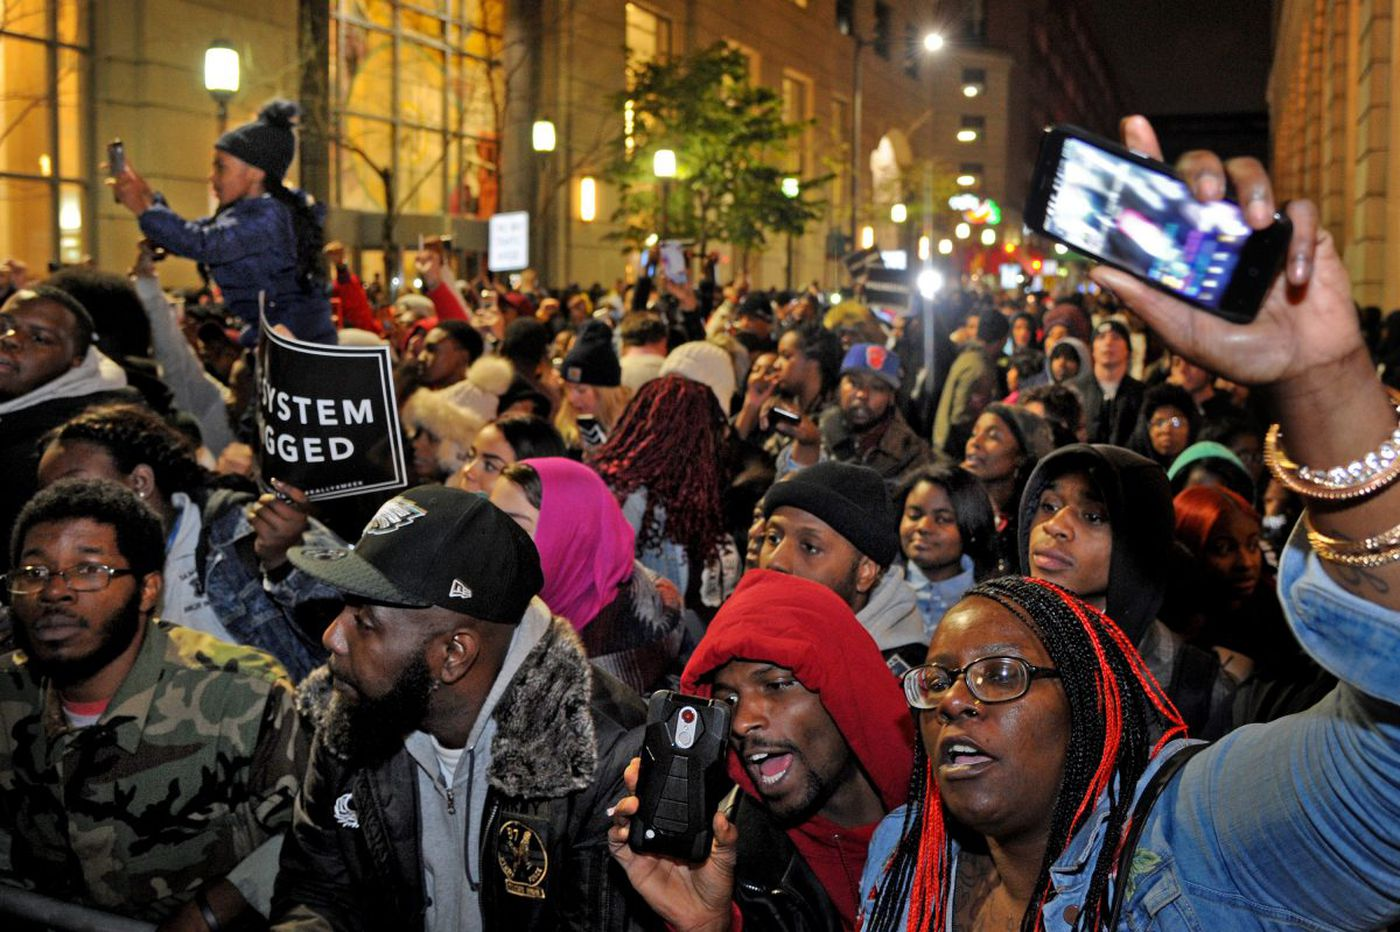 Supporters of imprisoned Meek Mill rally outside courthouse